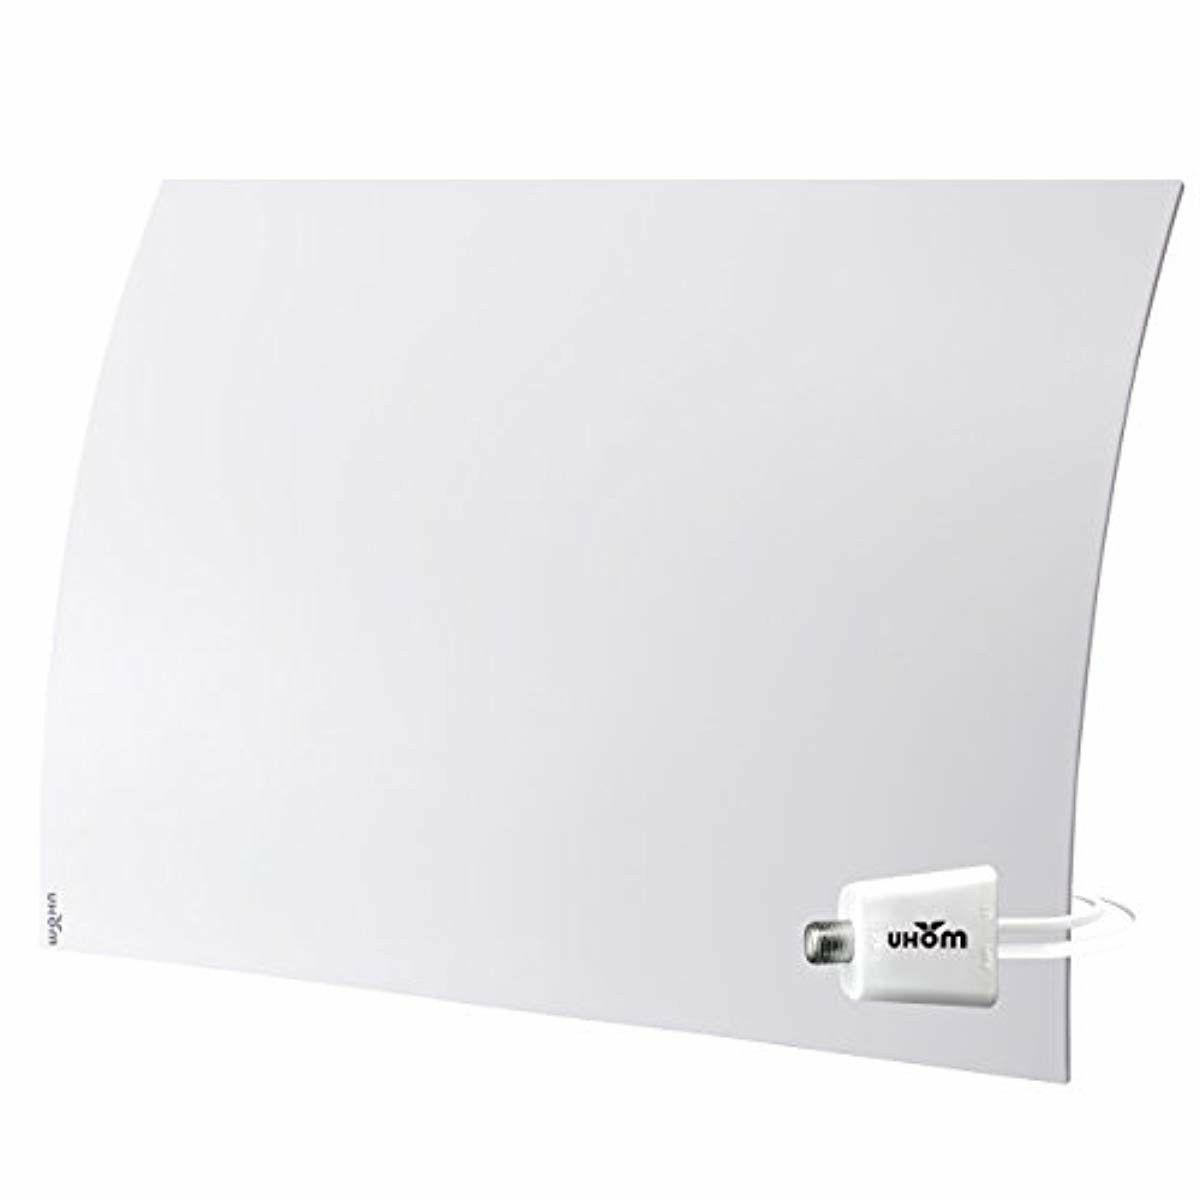 new curve 50 tv antenna indoor amplified